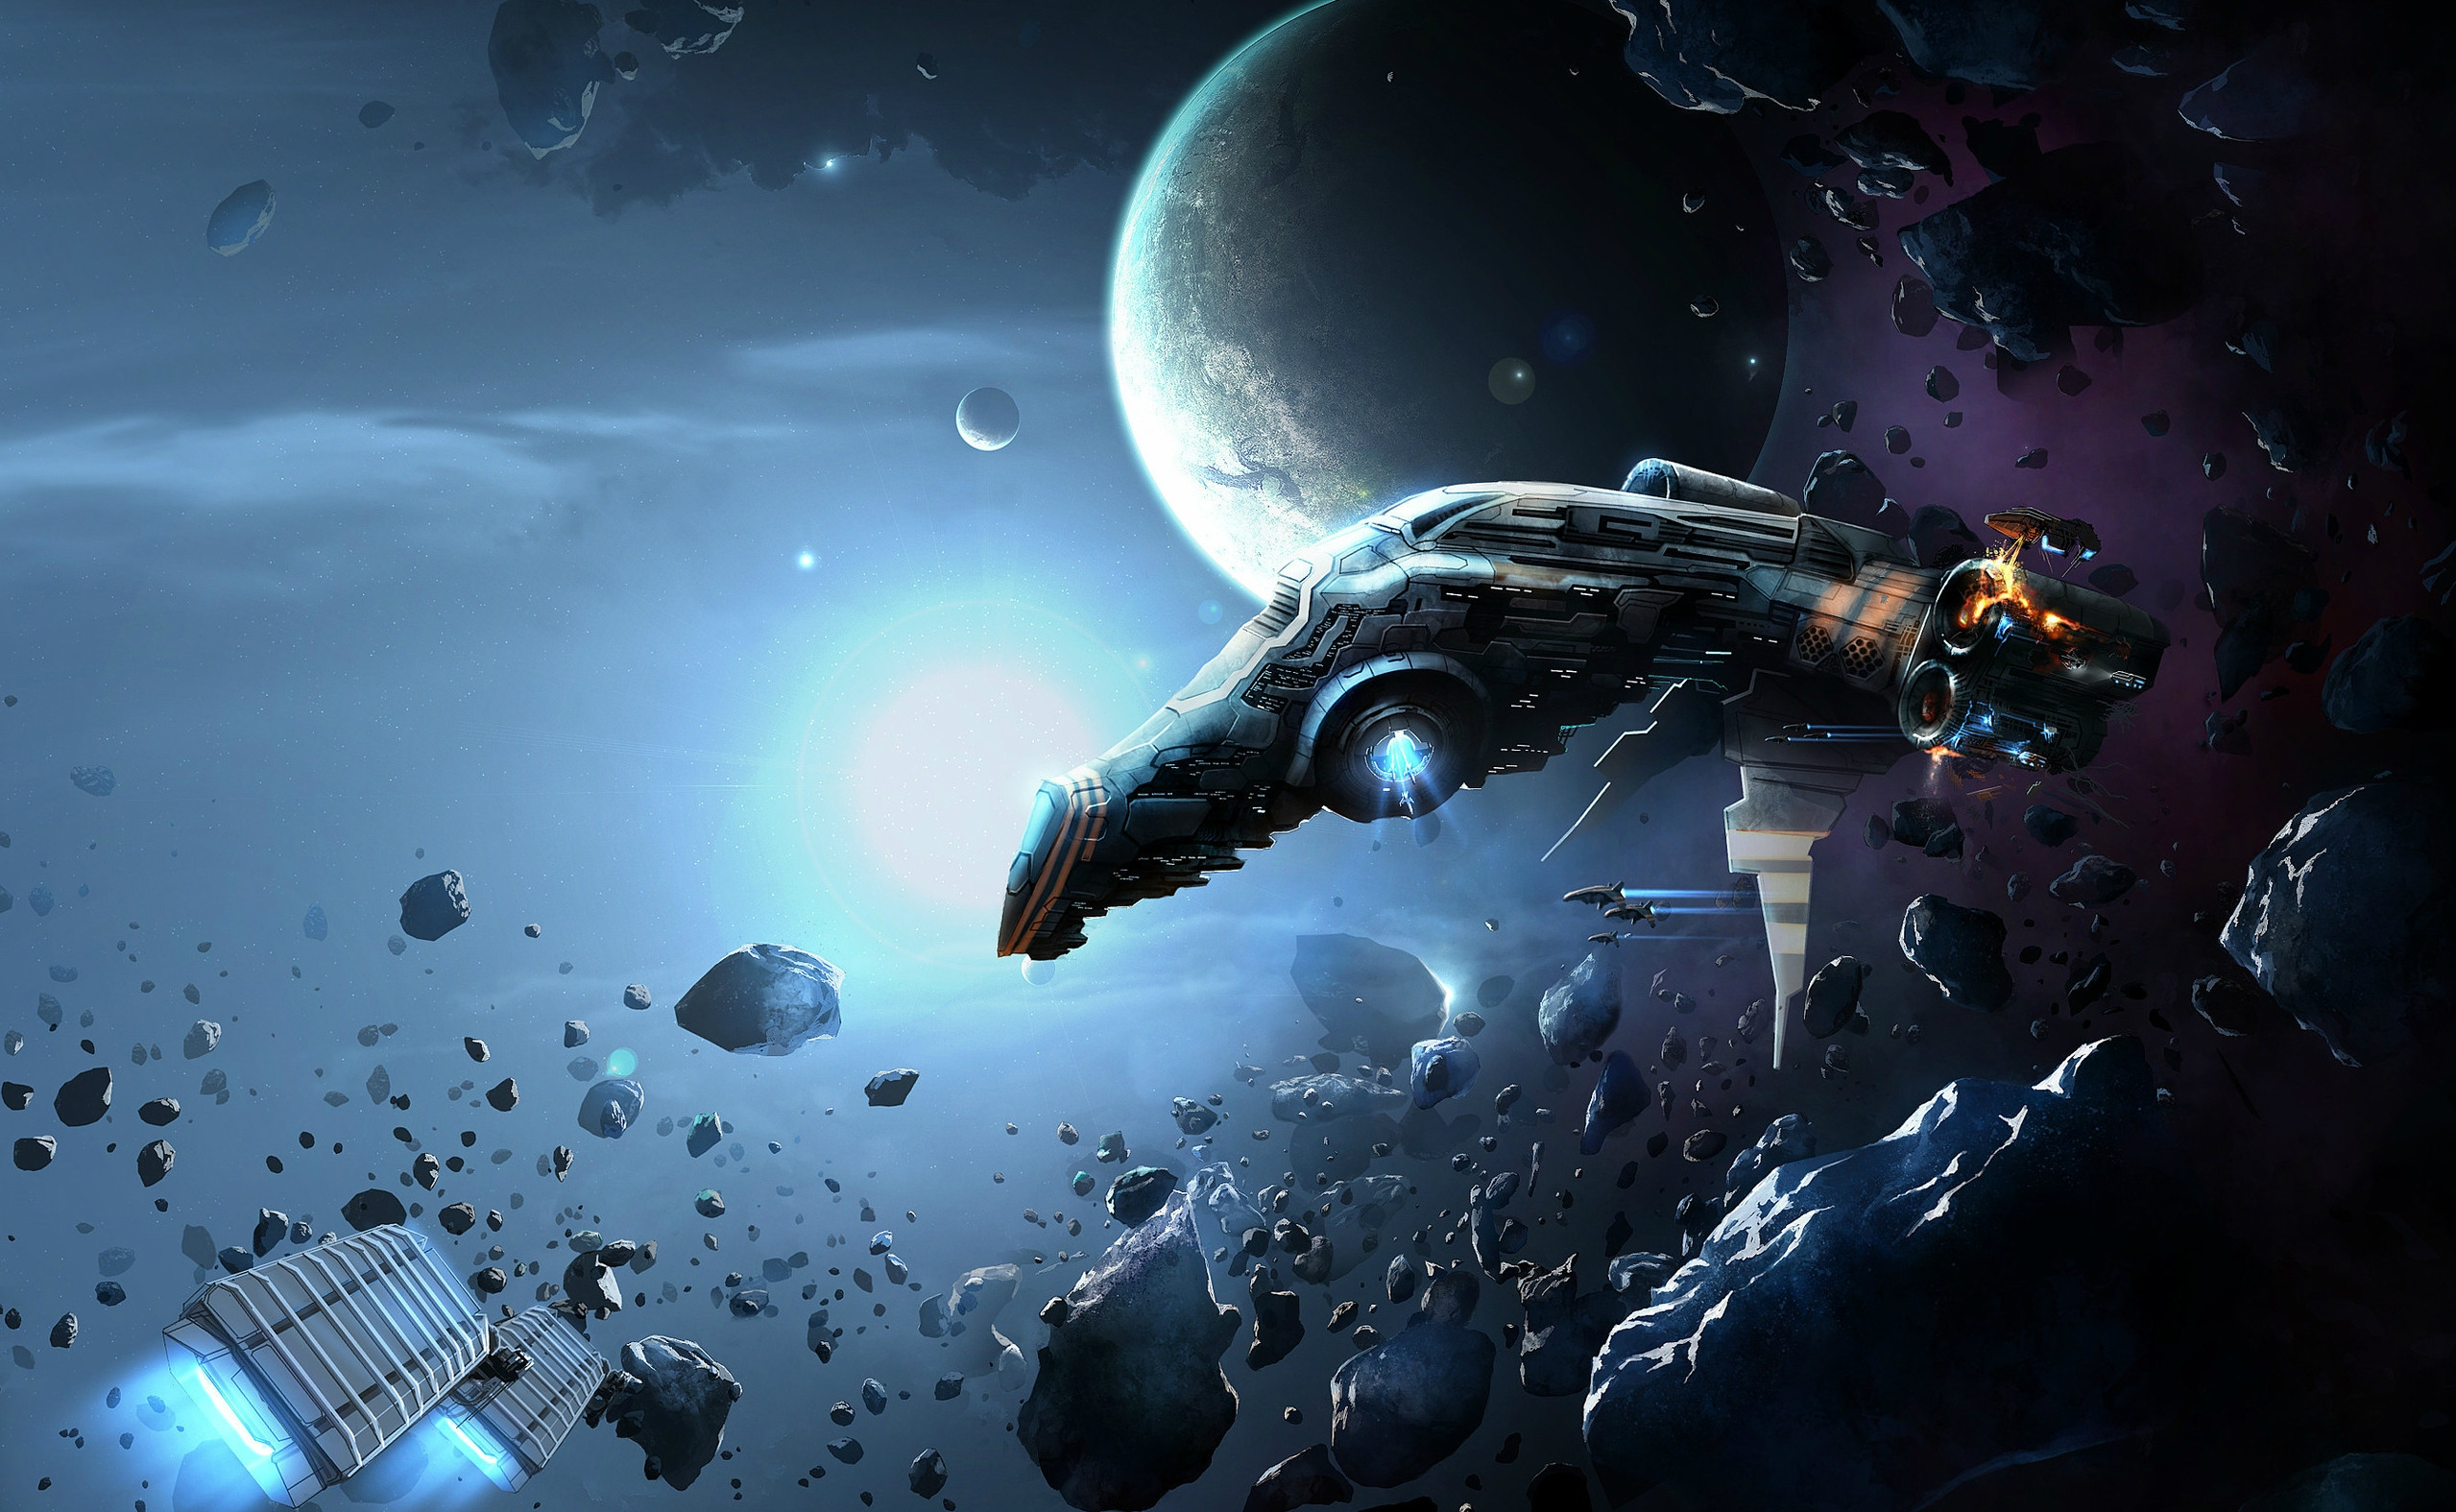 Eve Online Wallpaper HD